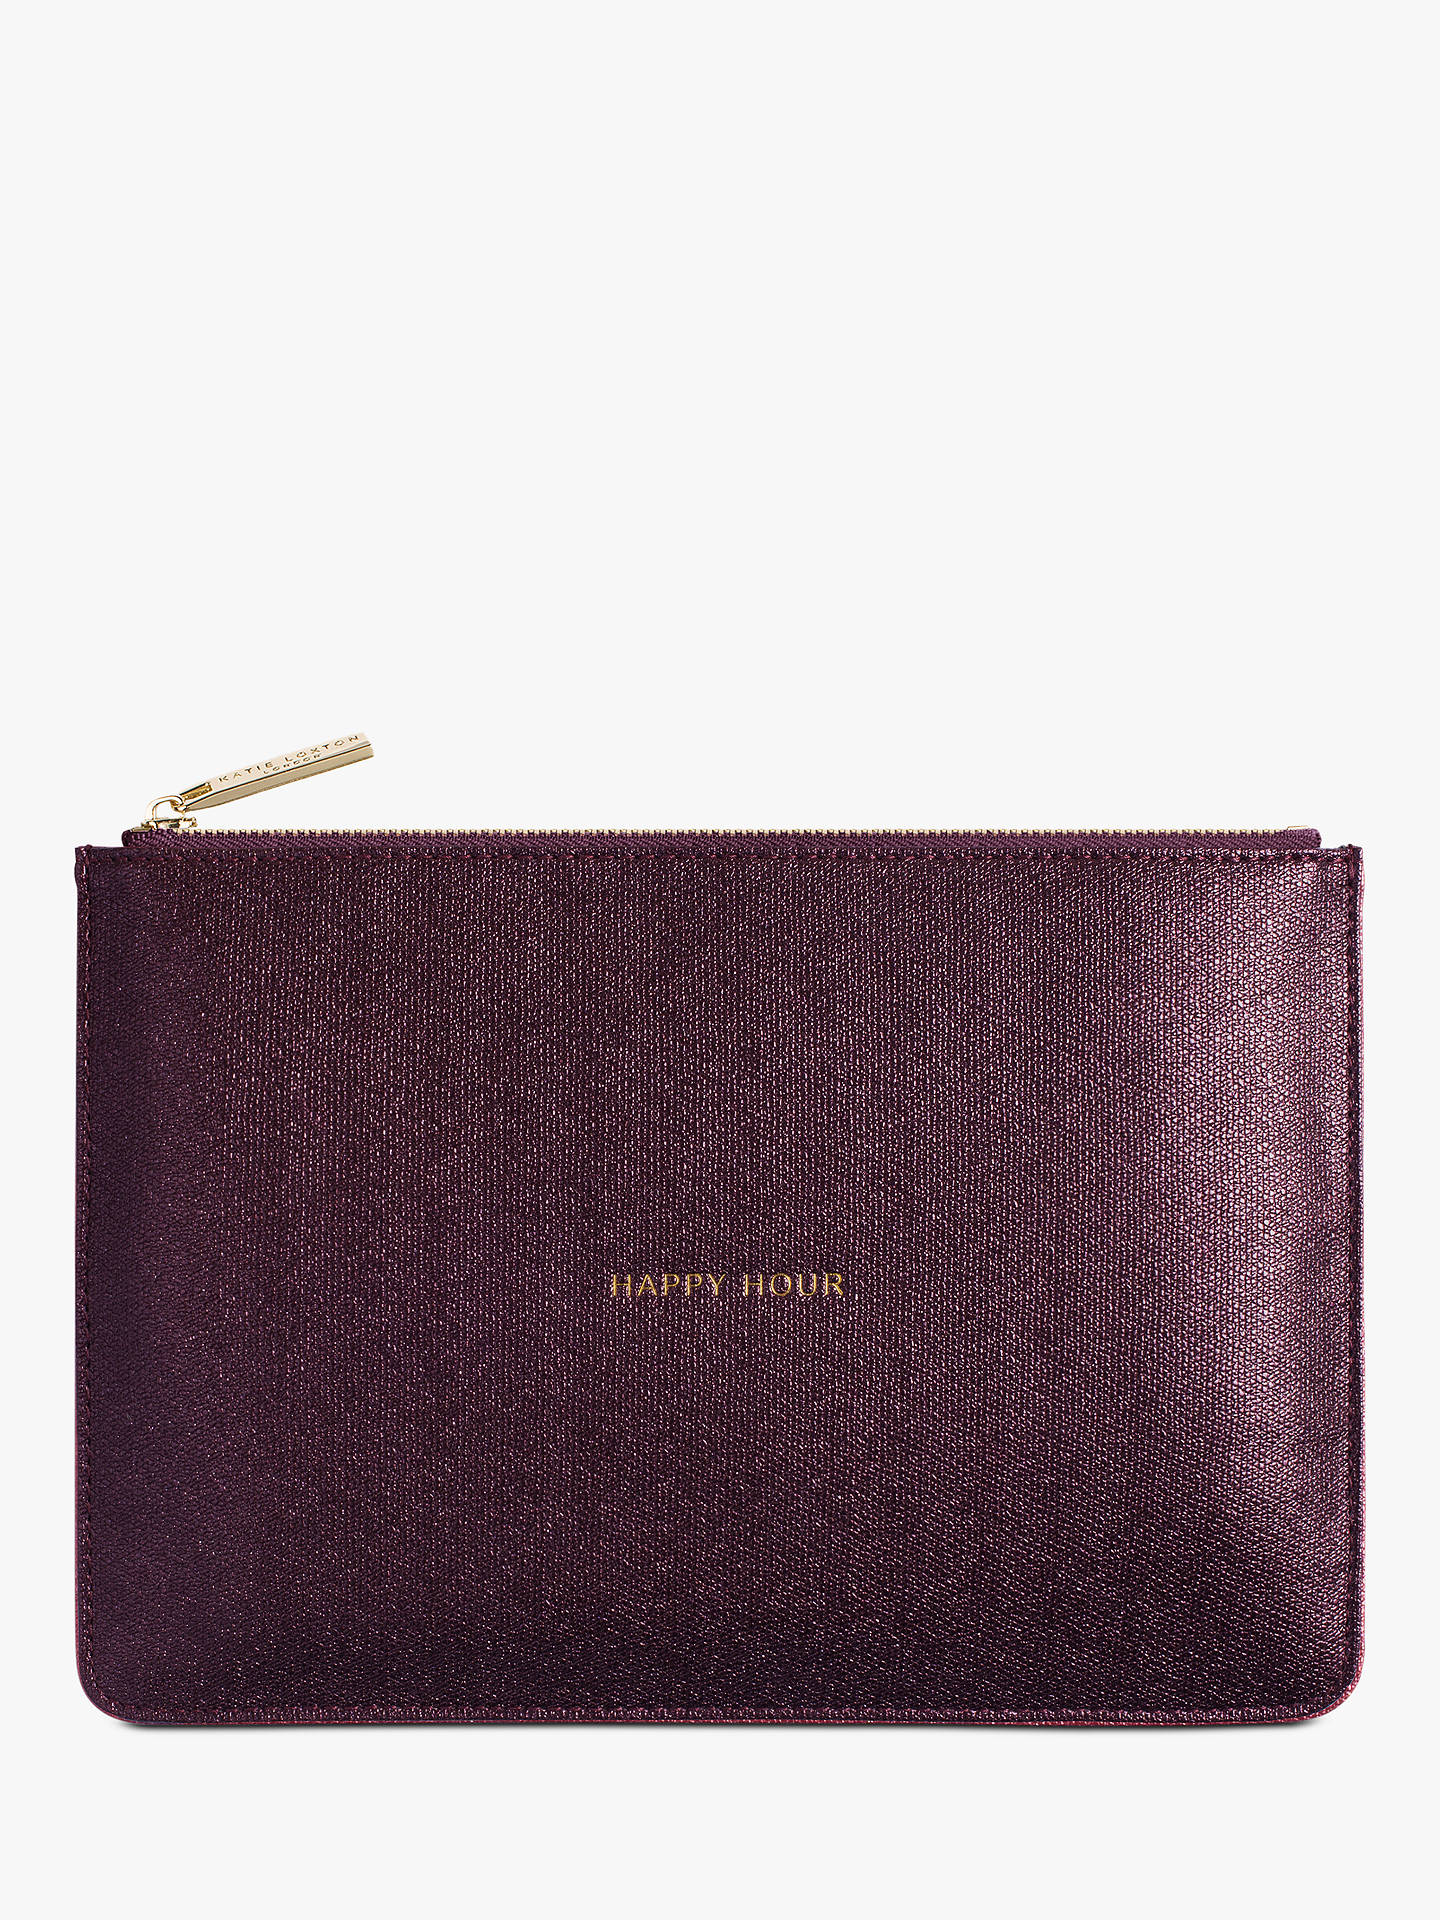 Katie Loxton Happy Hour Pouch At John Lewis Partners